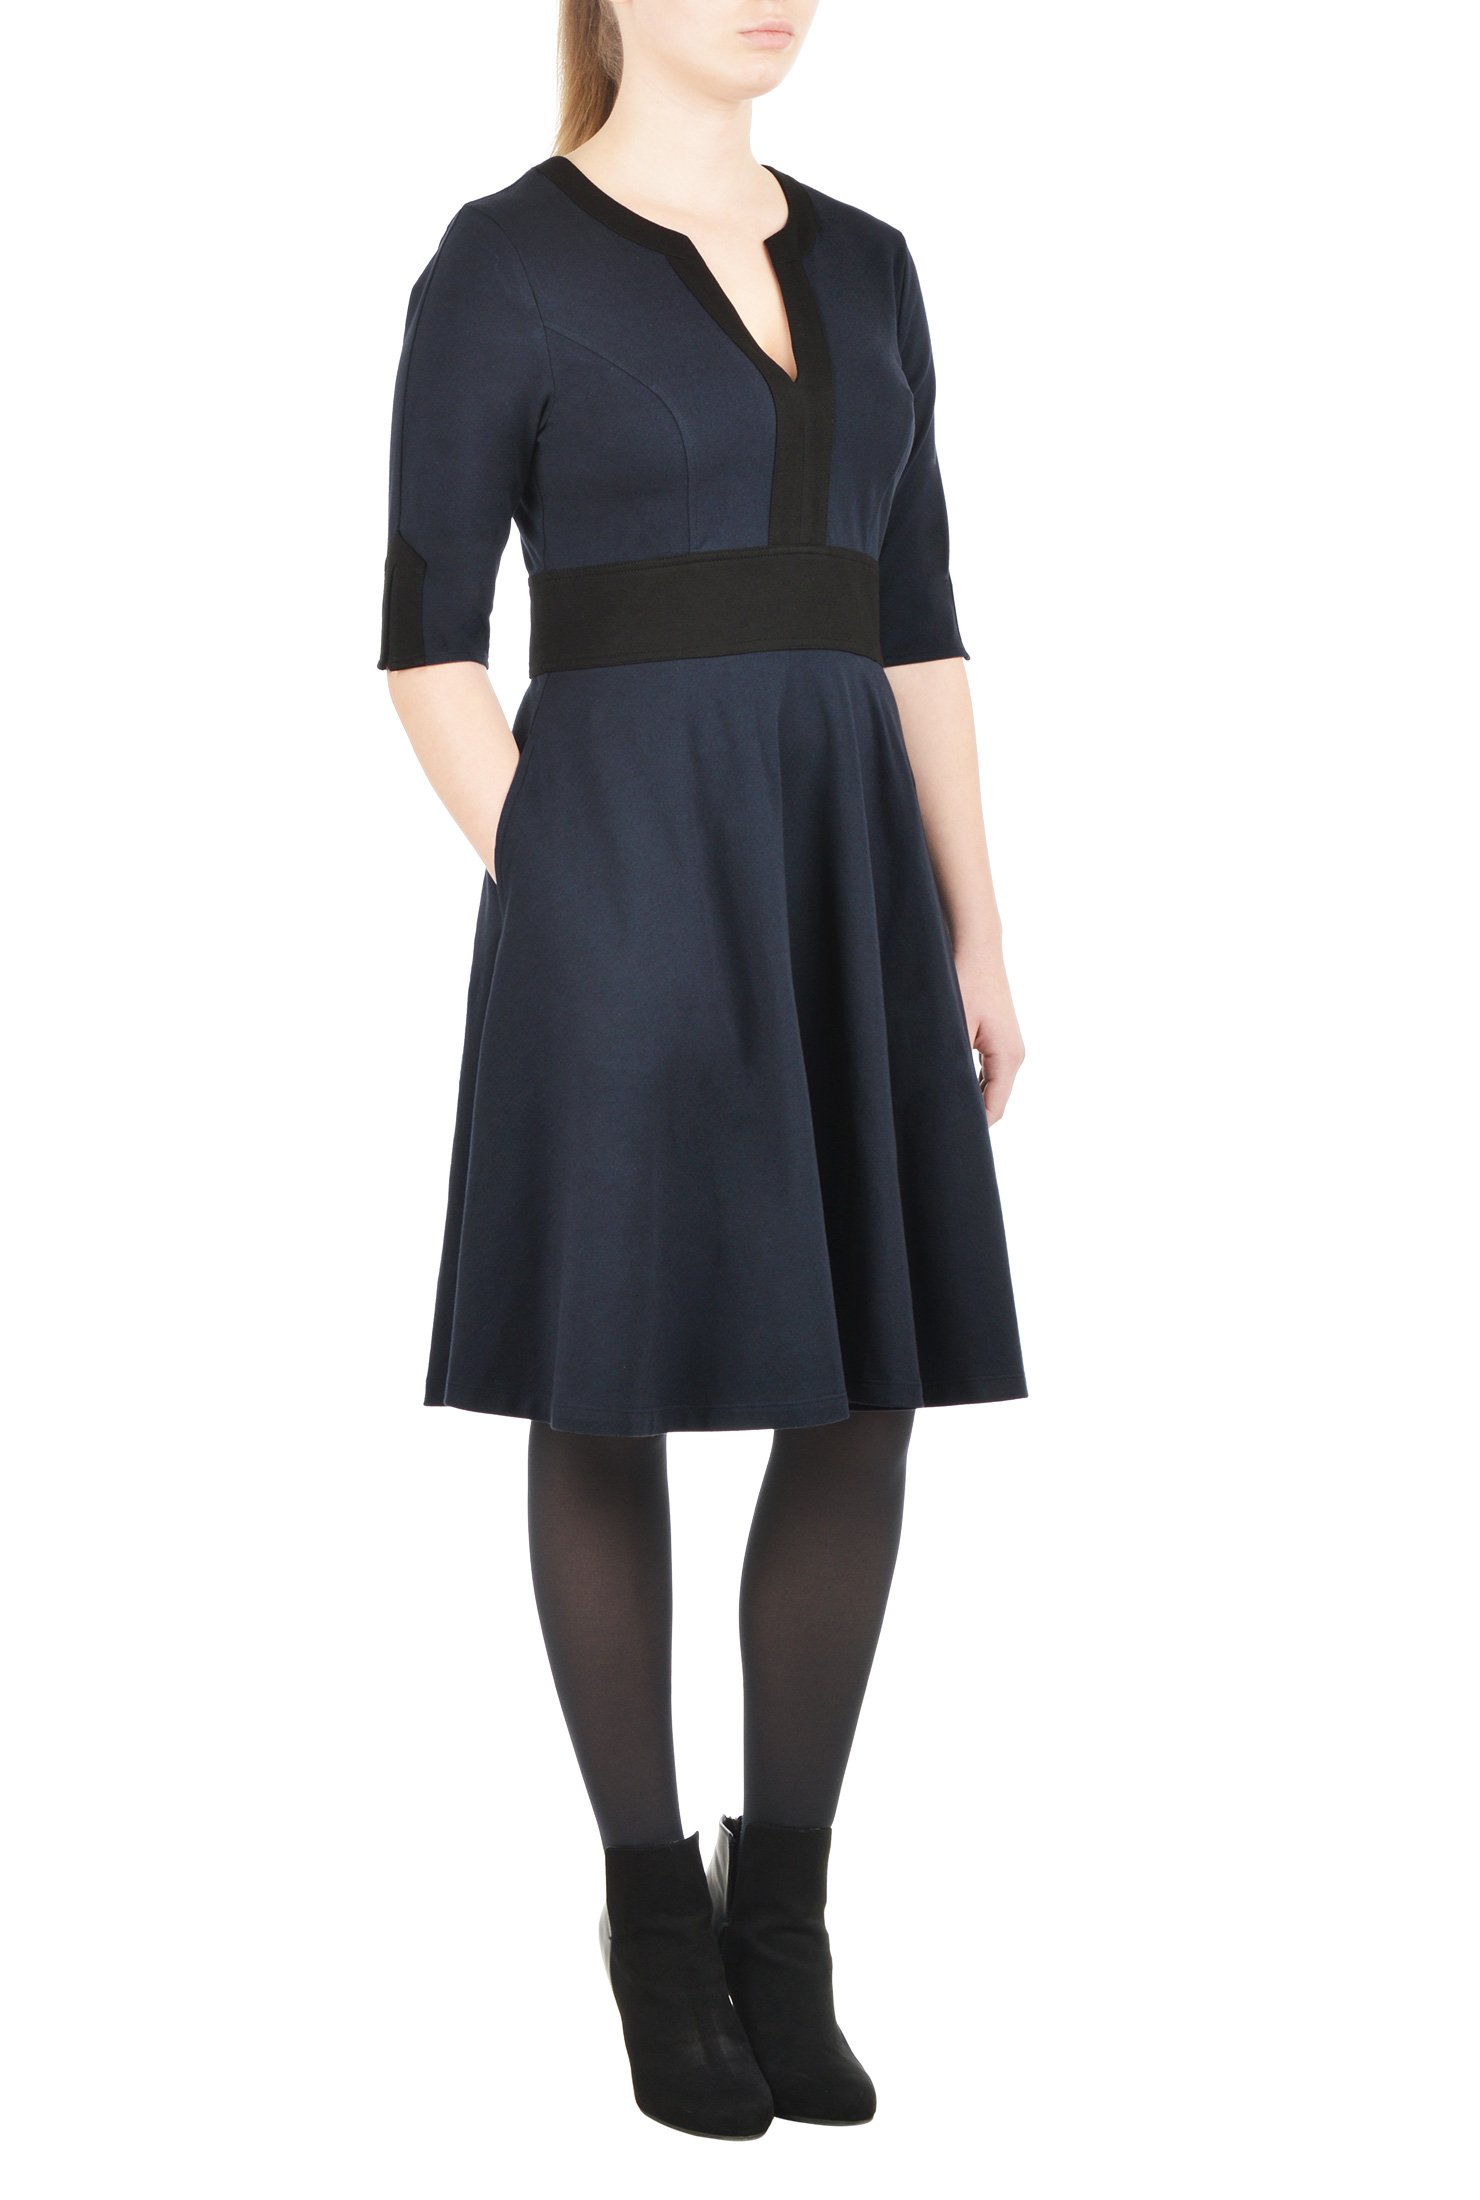 Made-to-order dress in sizes women's sizes 0 - 36 (standard and plus size) or to your precise measurements and they're adjusted to your height so your dress length is always perfect.